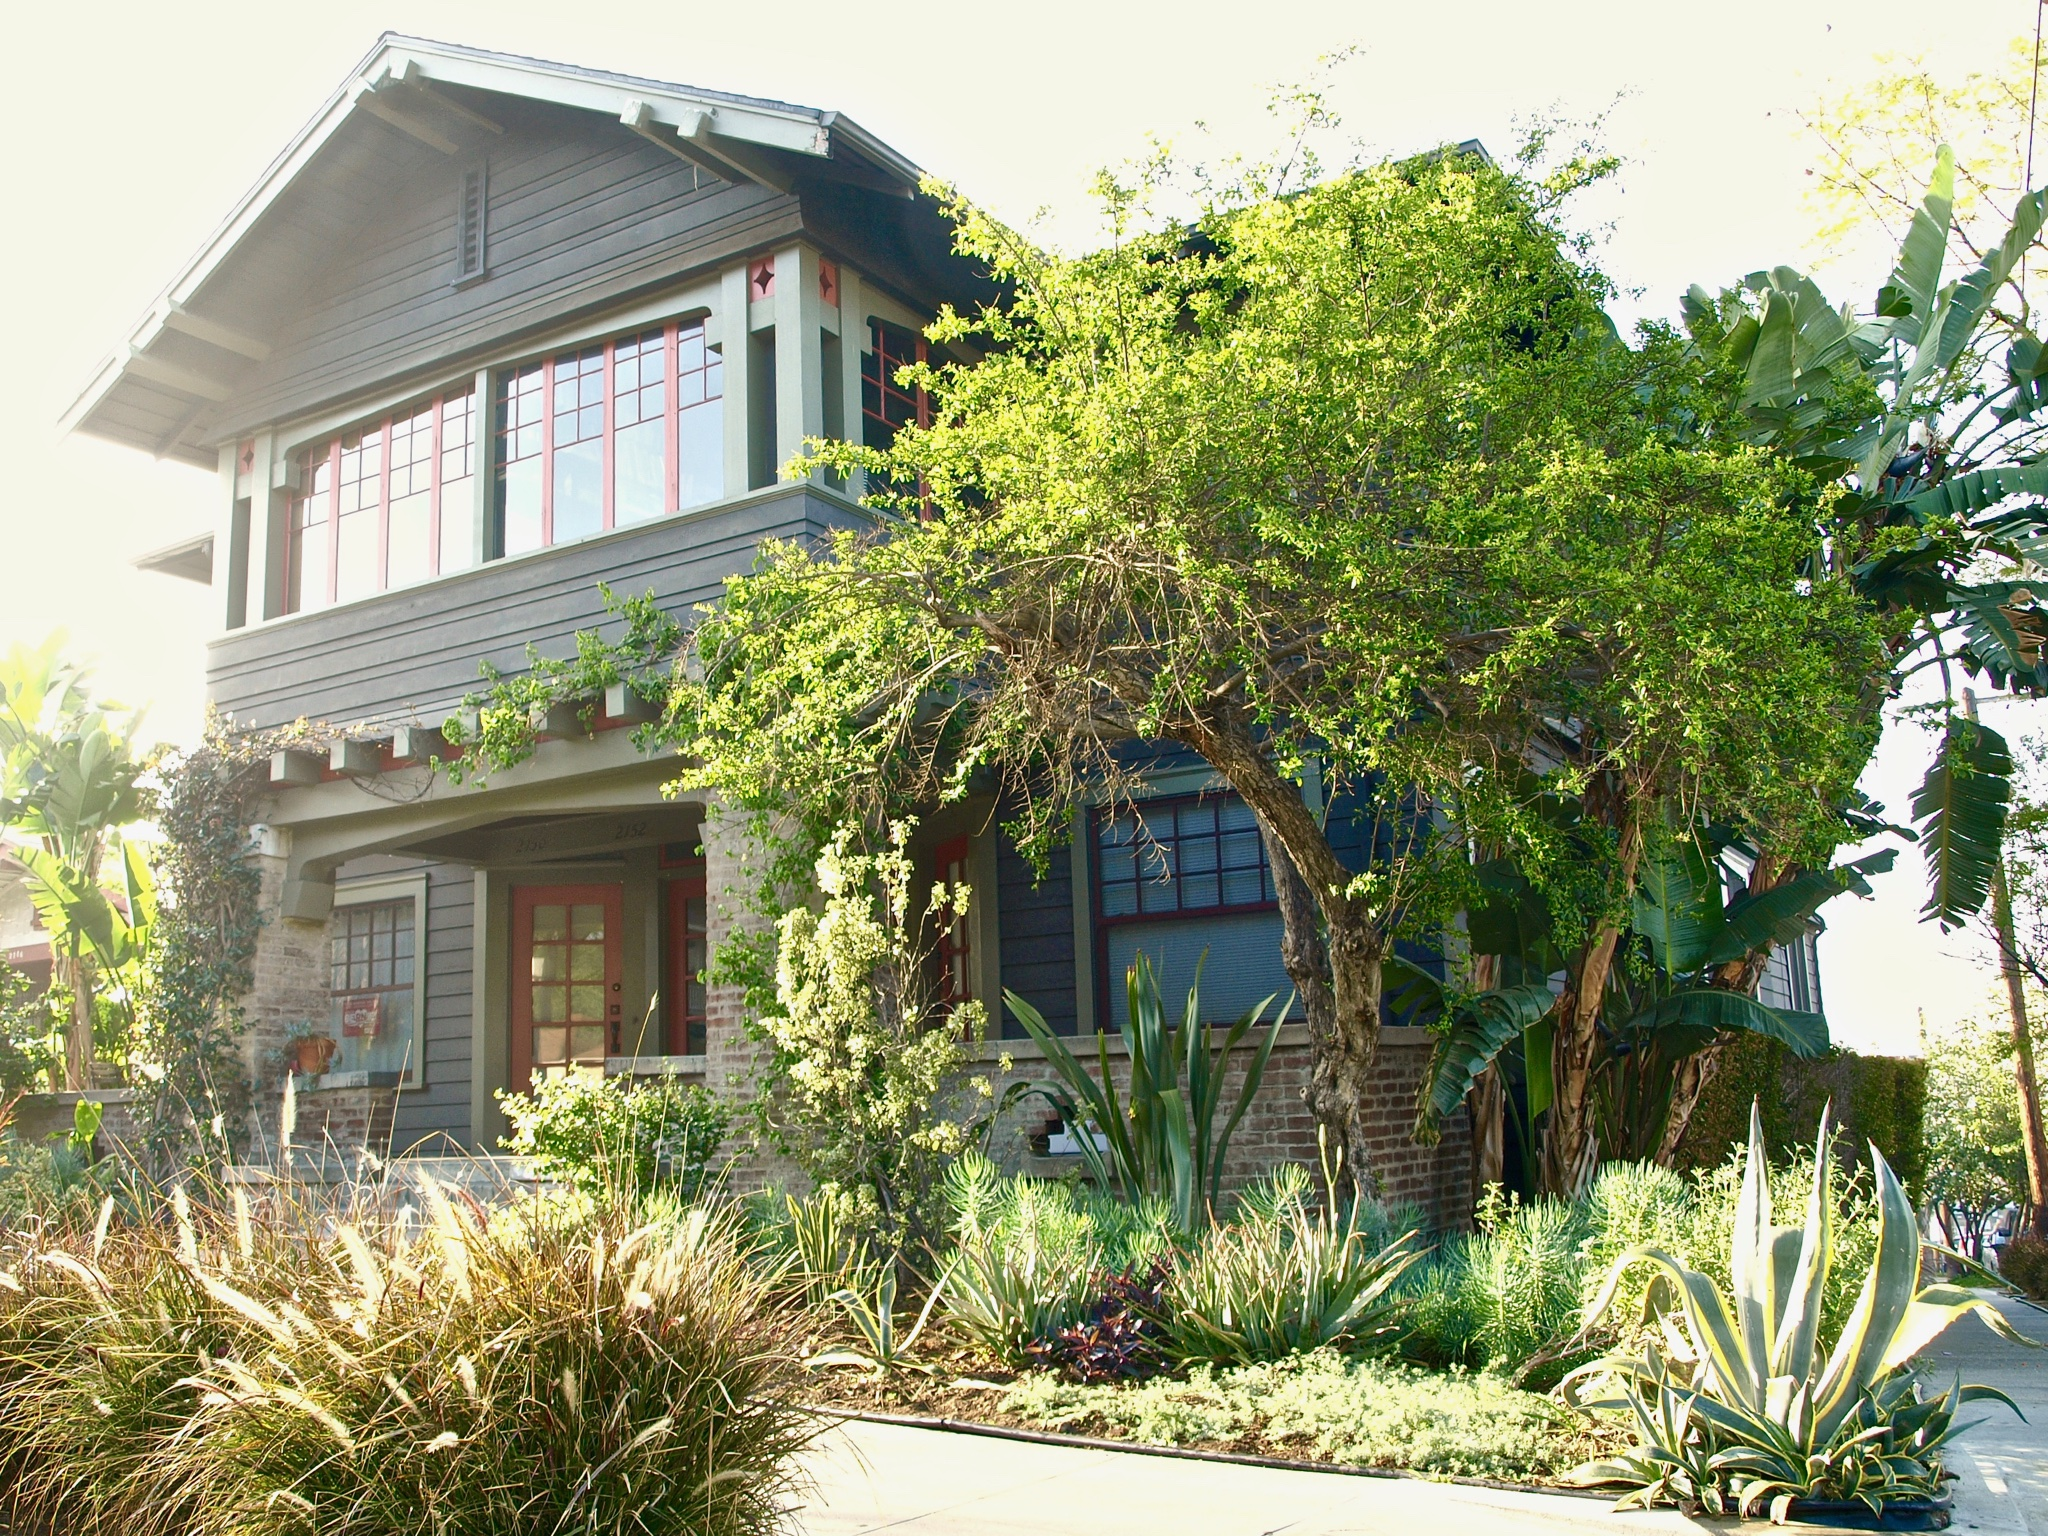 Phil Missig - Real Estate - Investment Property - Echo Park - Silver Lake - Craftsman - Architecture